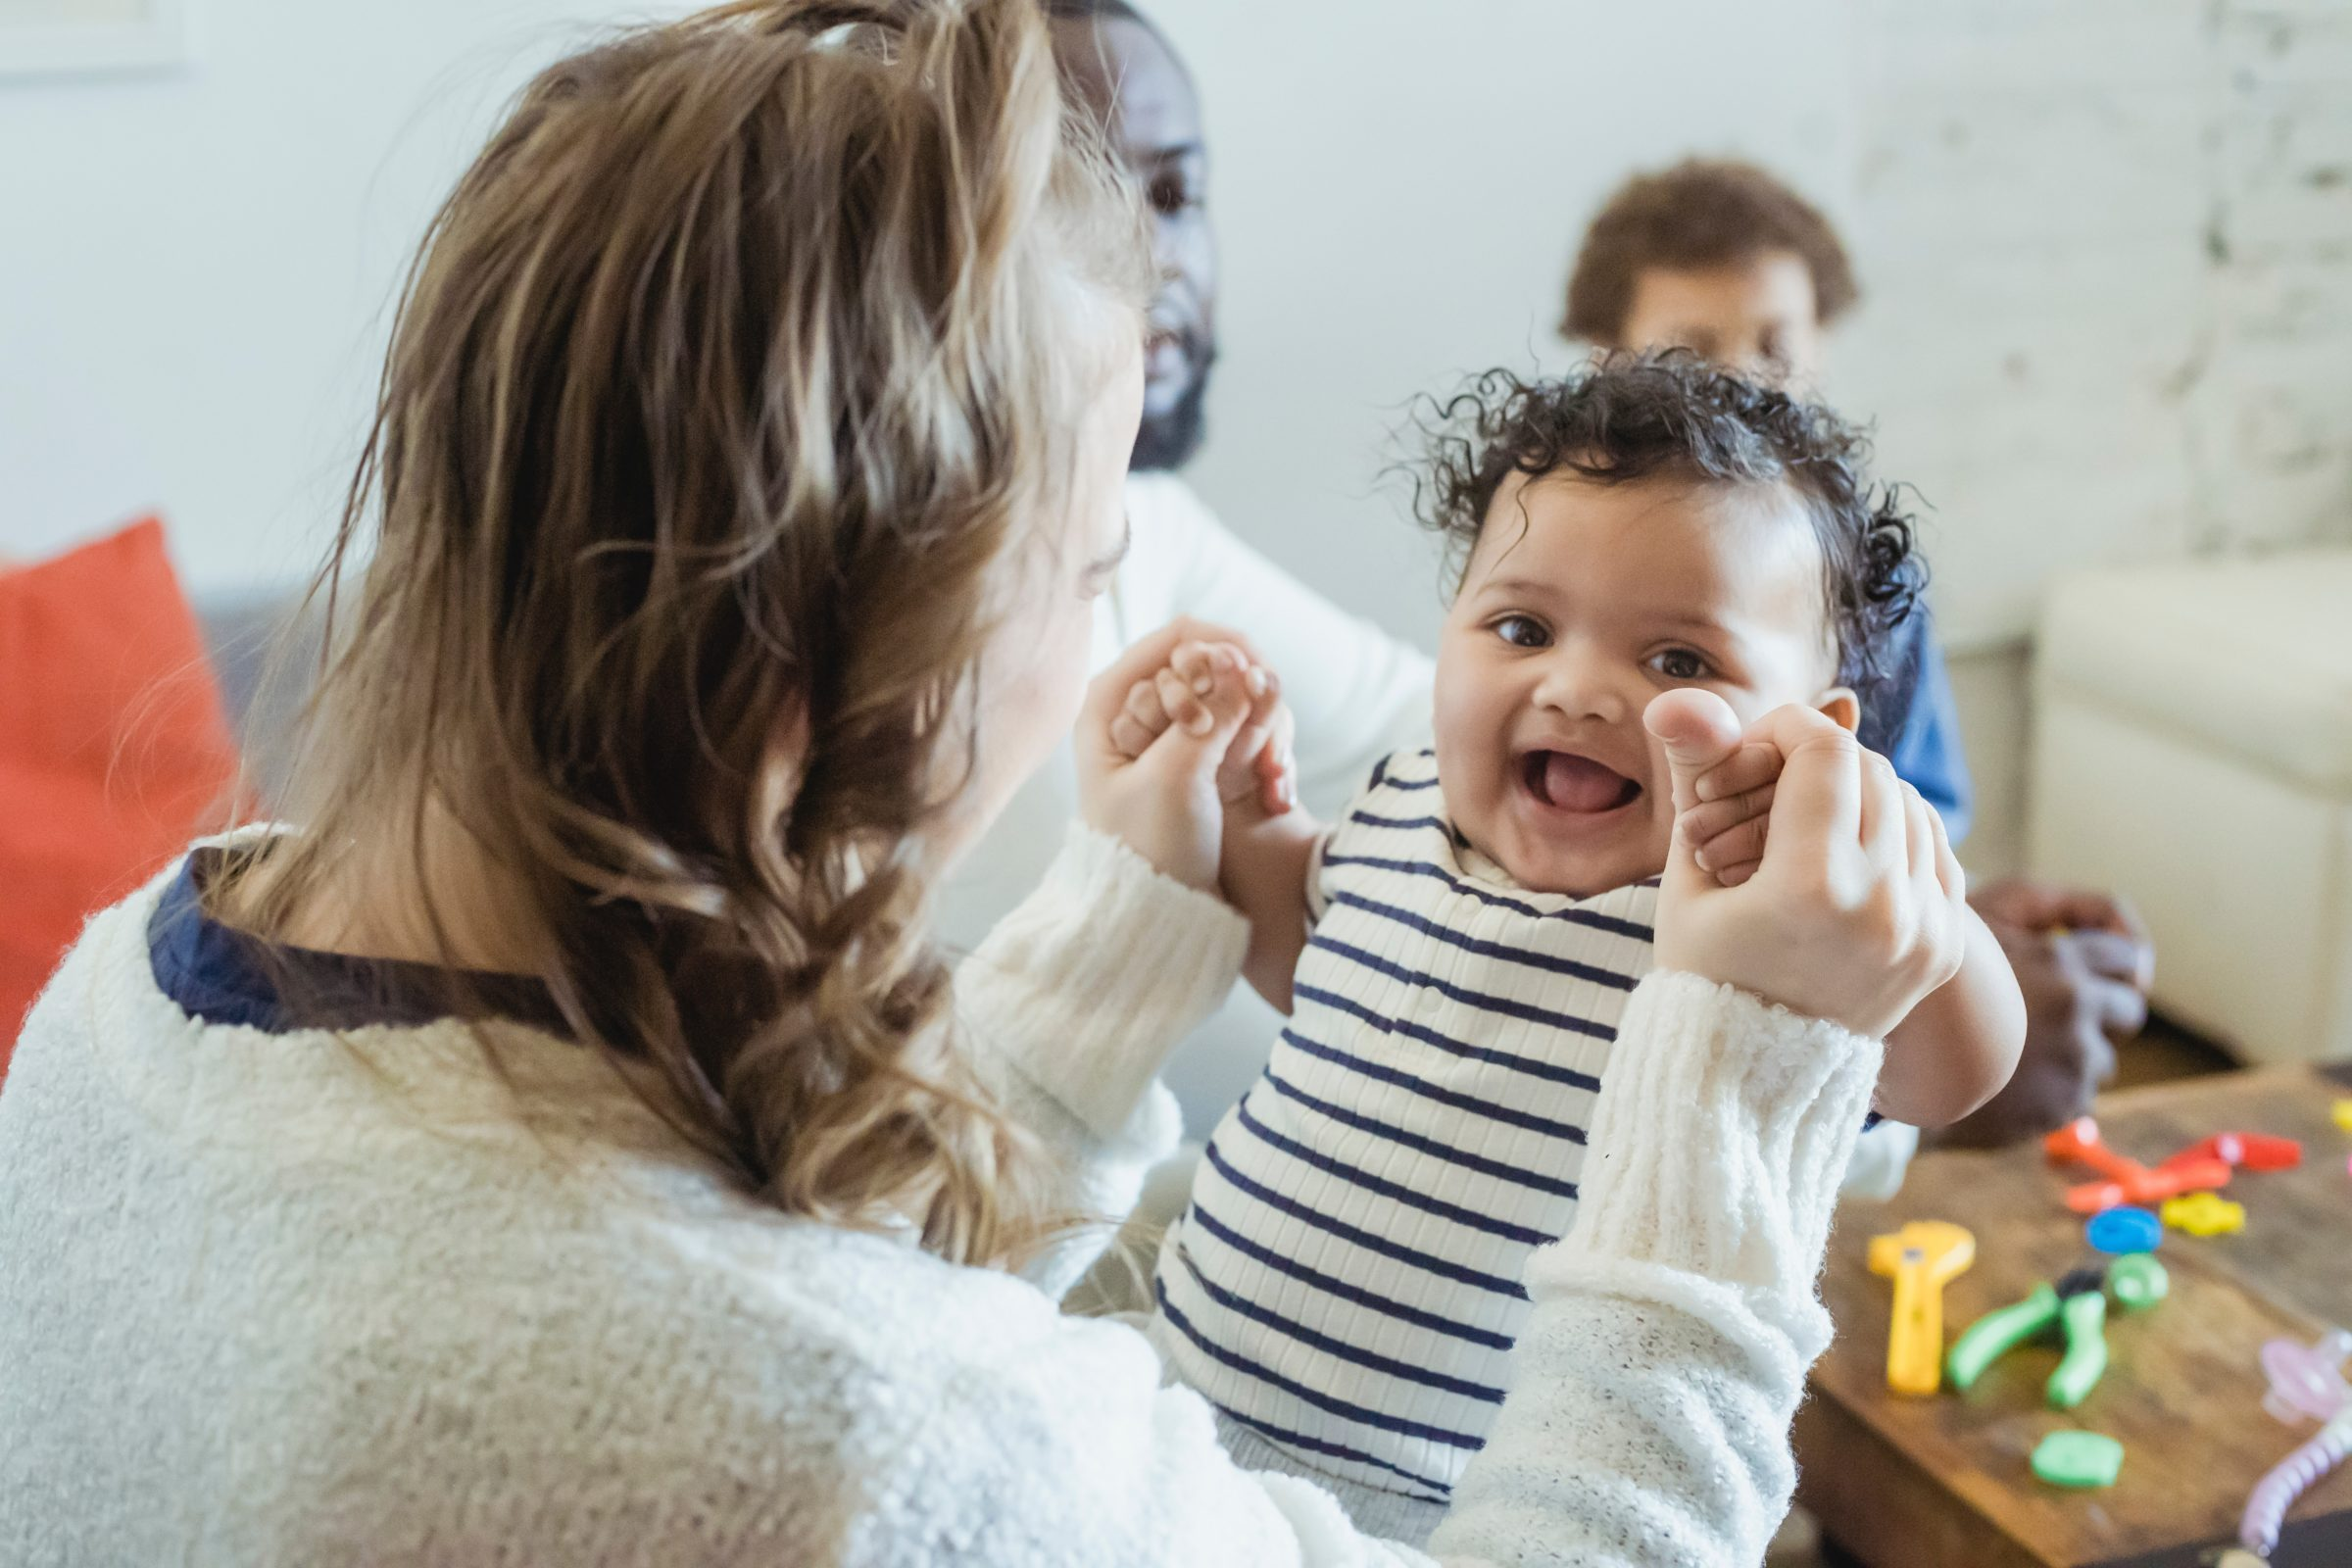 15 Fun Things To Do with a 7-Month Old